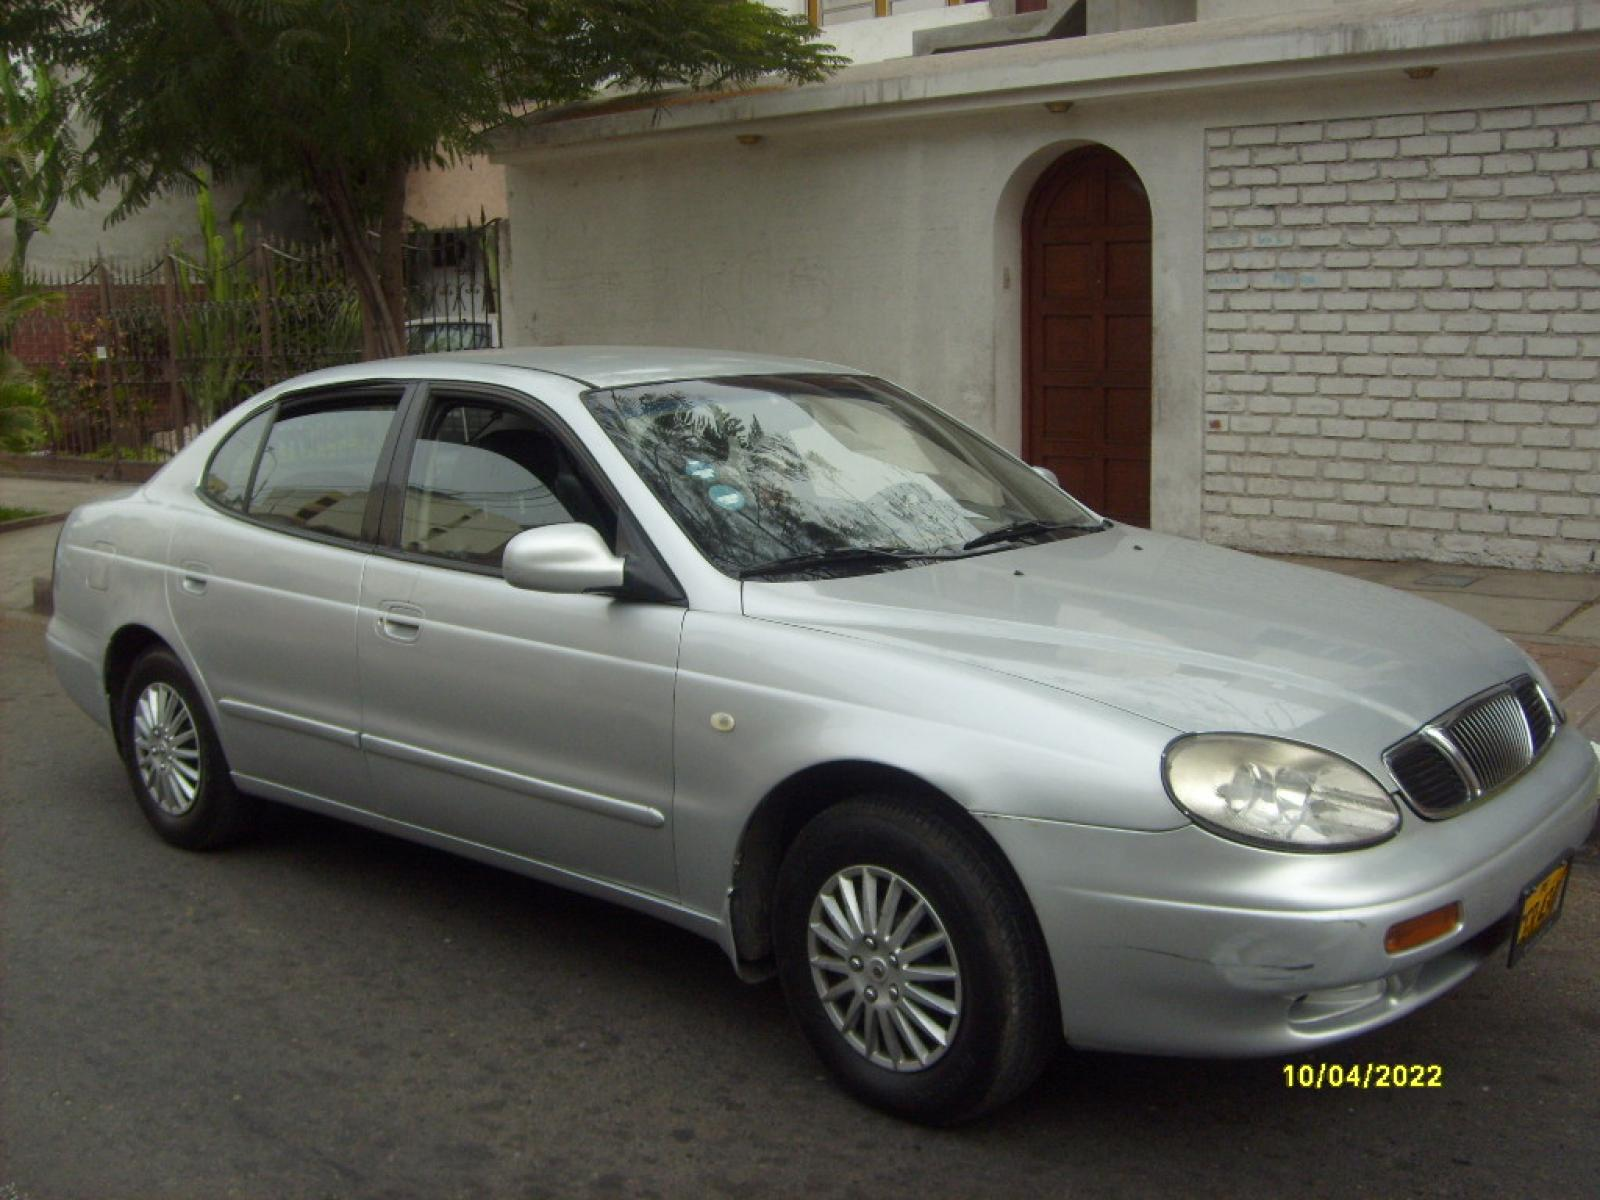 2001 Daewoo Leganza Information and photos ZombieDrive